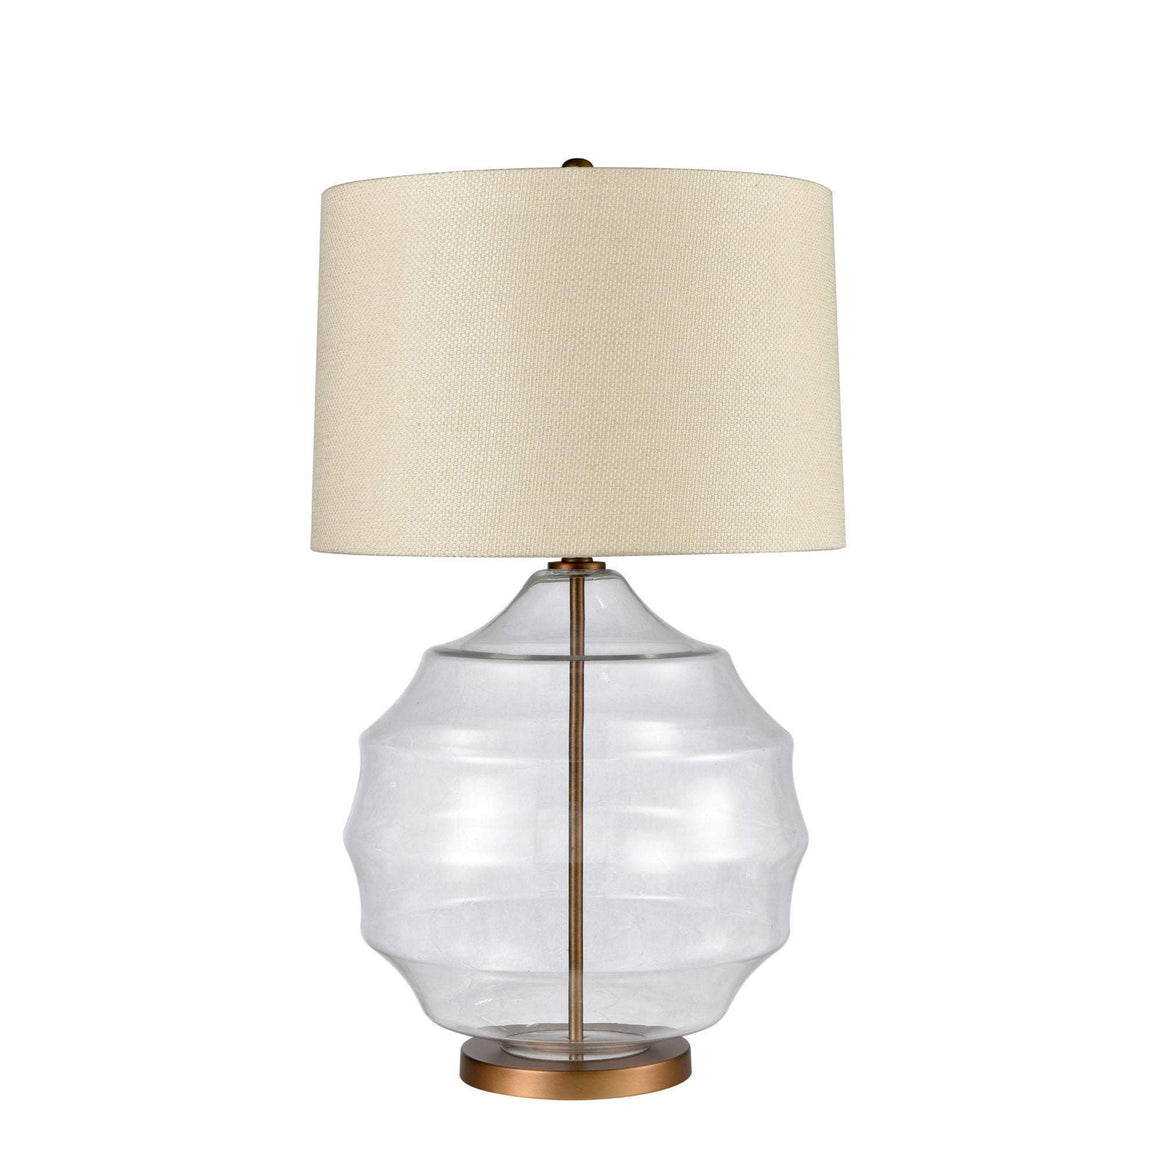 VICTORIA GLASS LAMP W/ IVORY SHADE